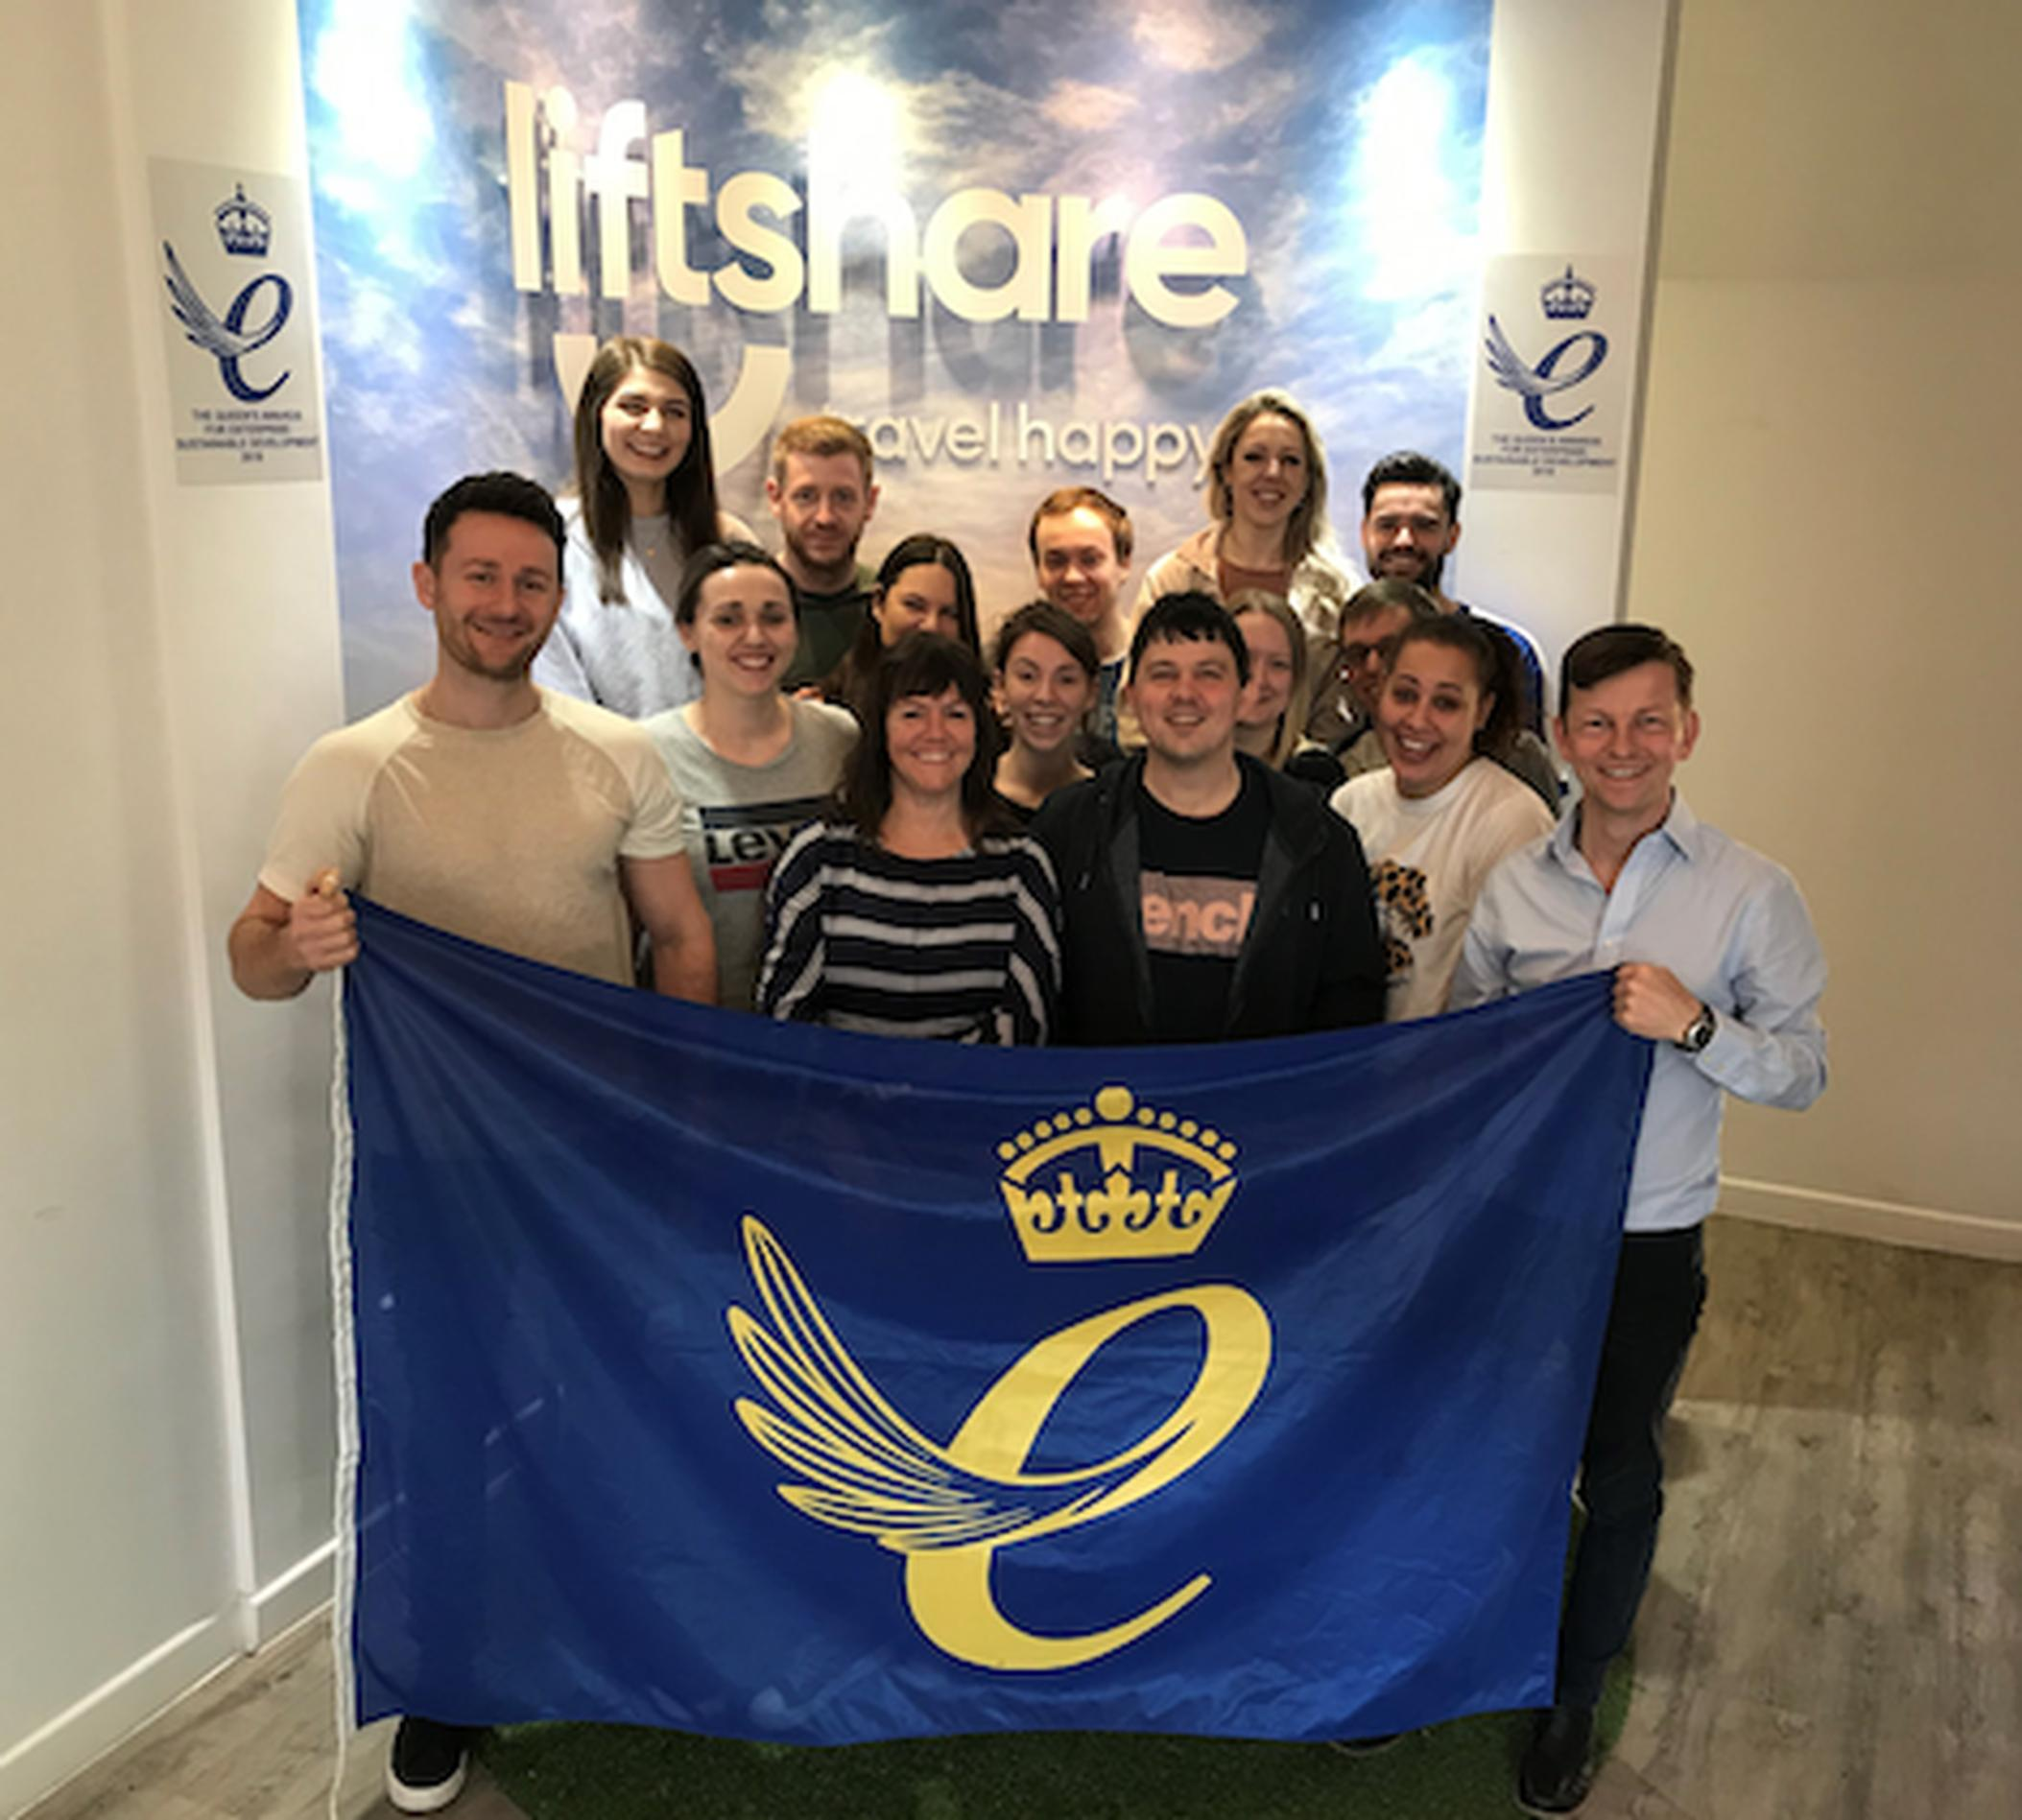 The Liftshare team celebrate